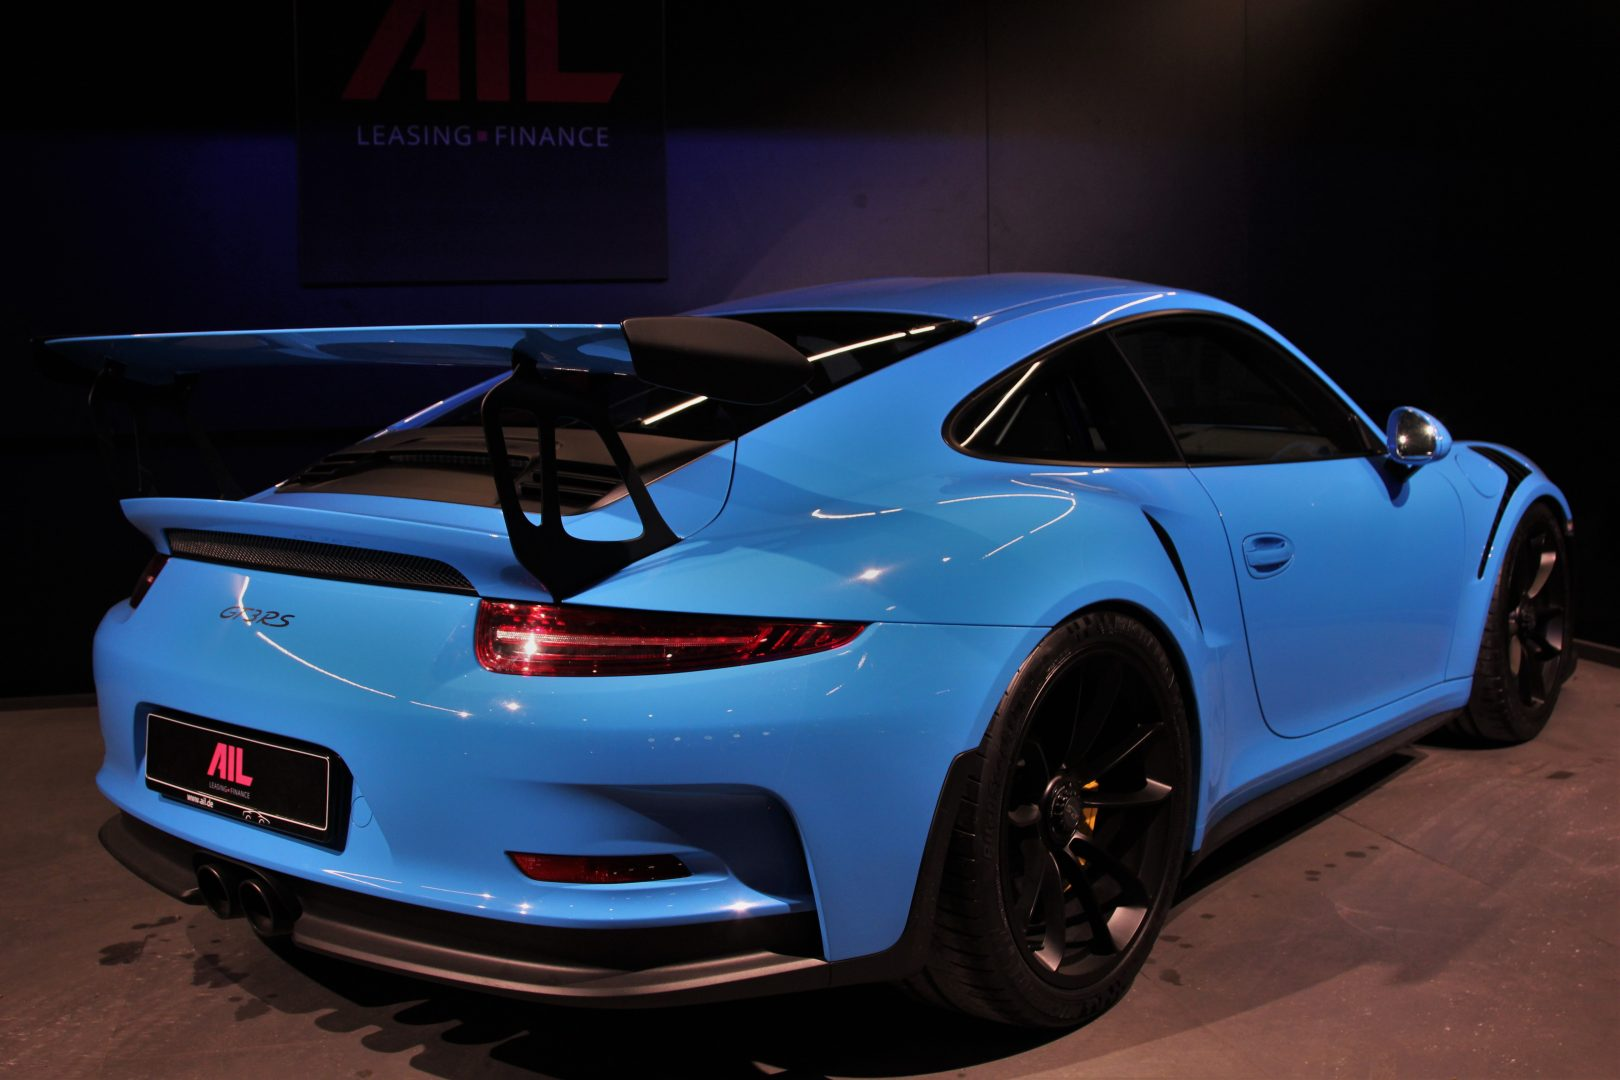 AIL Porsche 911 991 GT3 RS Clubsport Paket LIFT  1